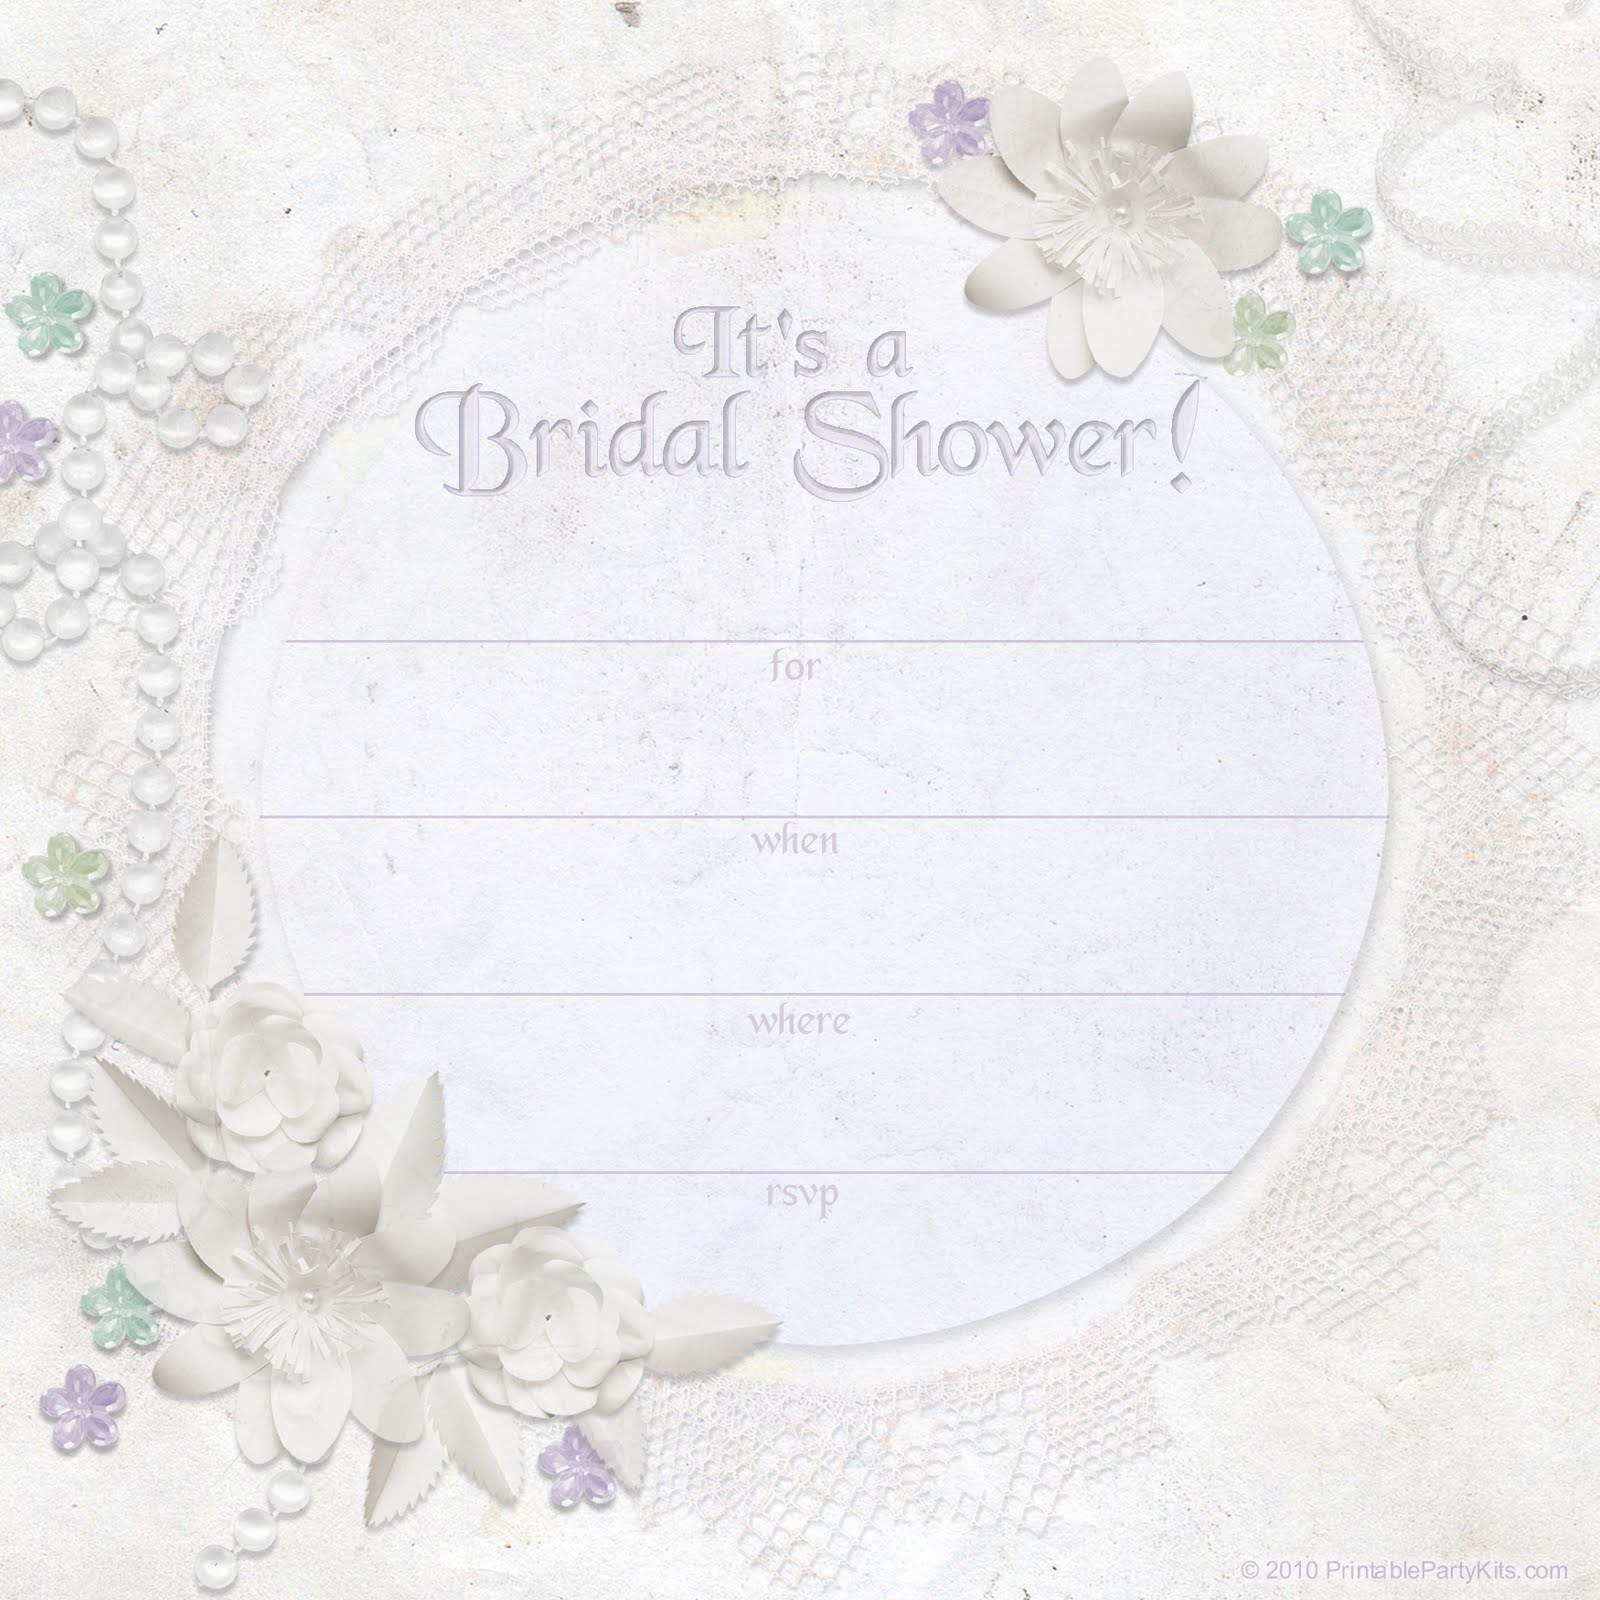 Free Wedding Shower Invitation Templates absolutely amazing ideas for your invitation example